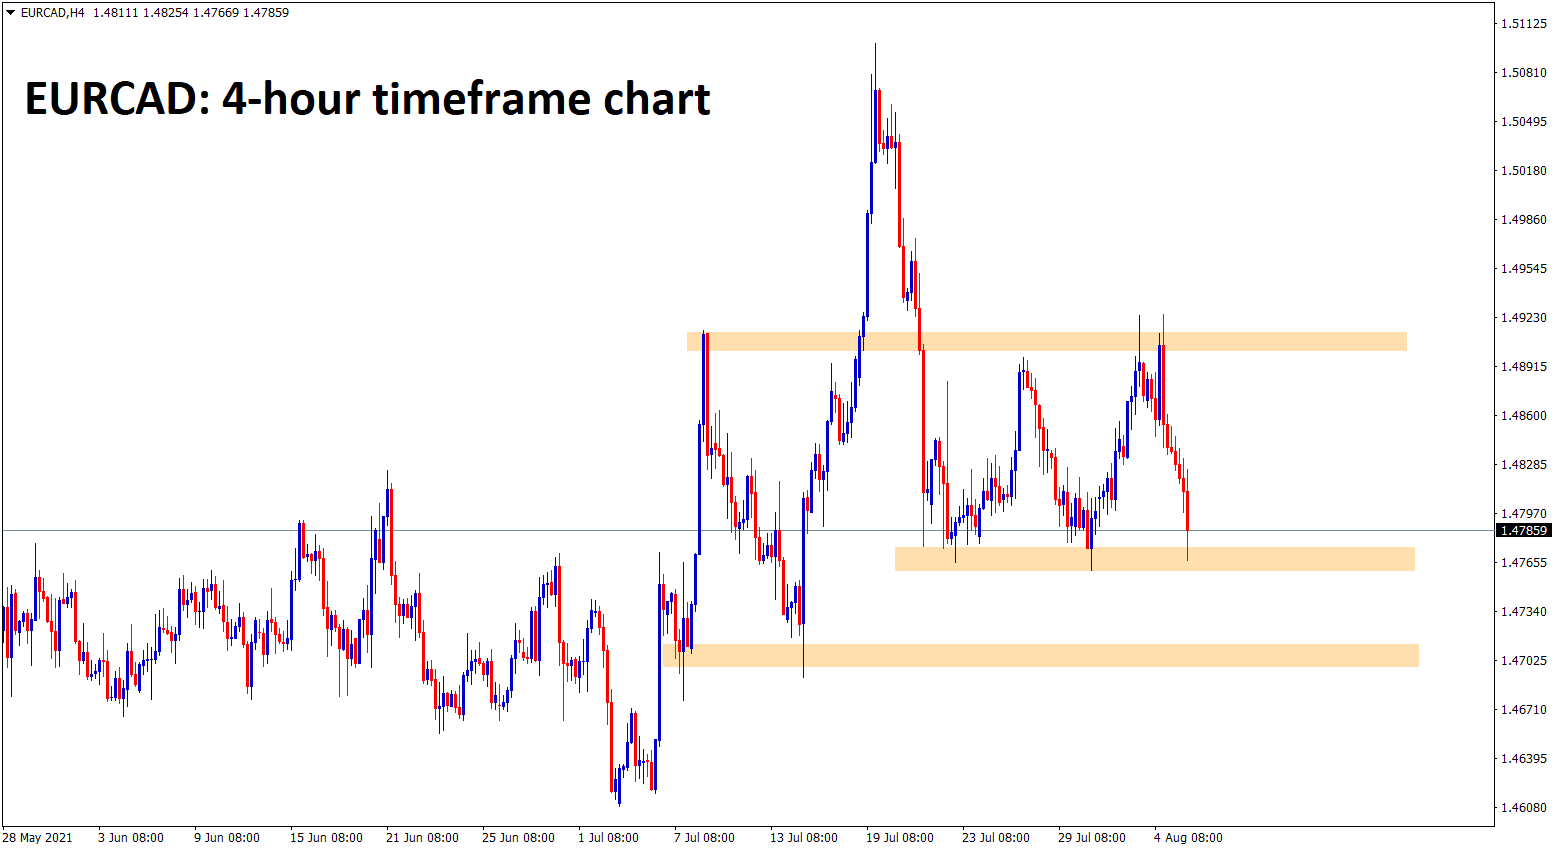 EURCAD fall again to the recent support